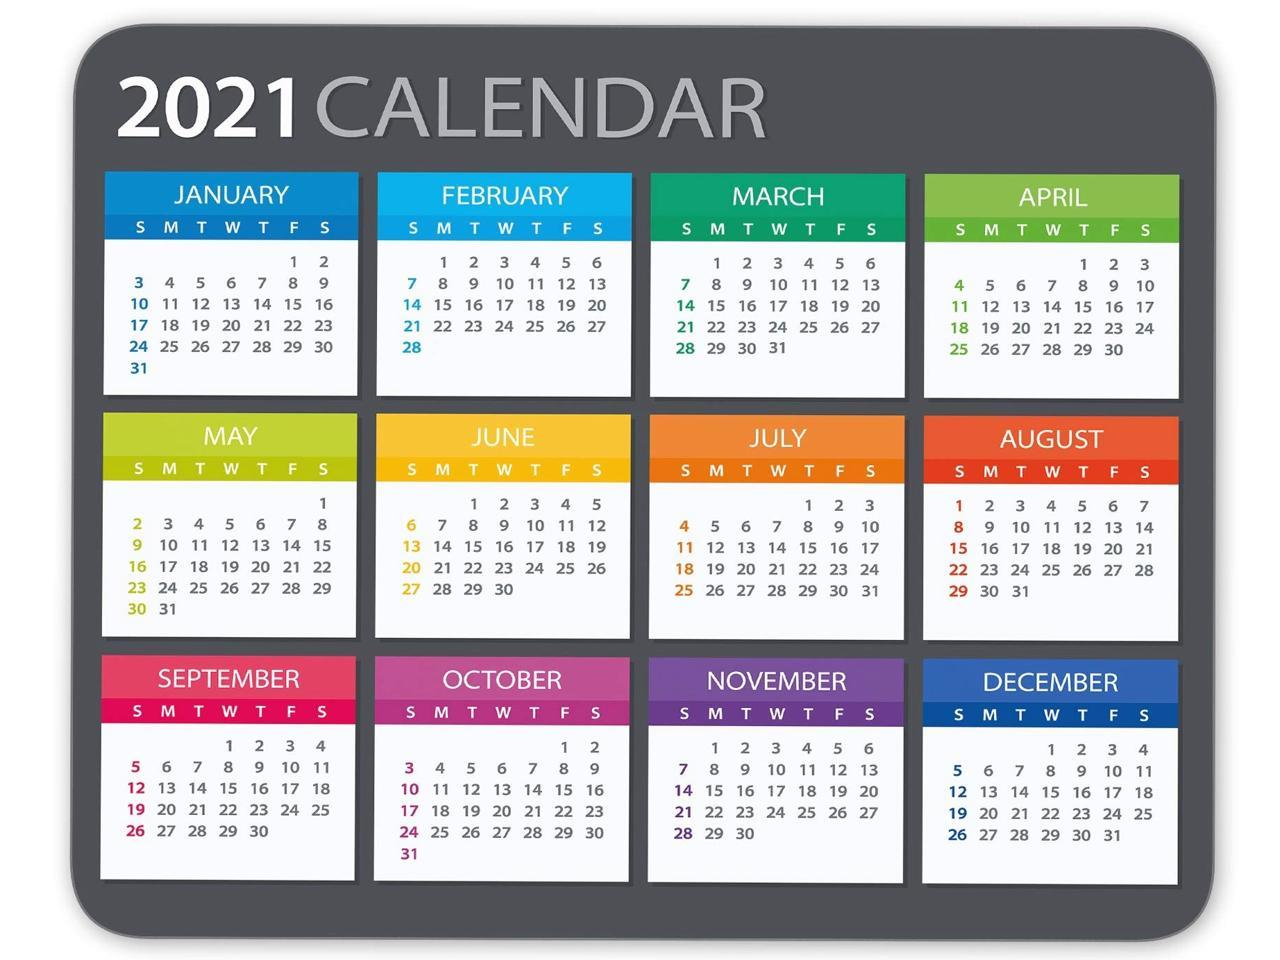 2021 Calendar Mouse Pad Gaming Mouse Pad Office Mouse Pad